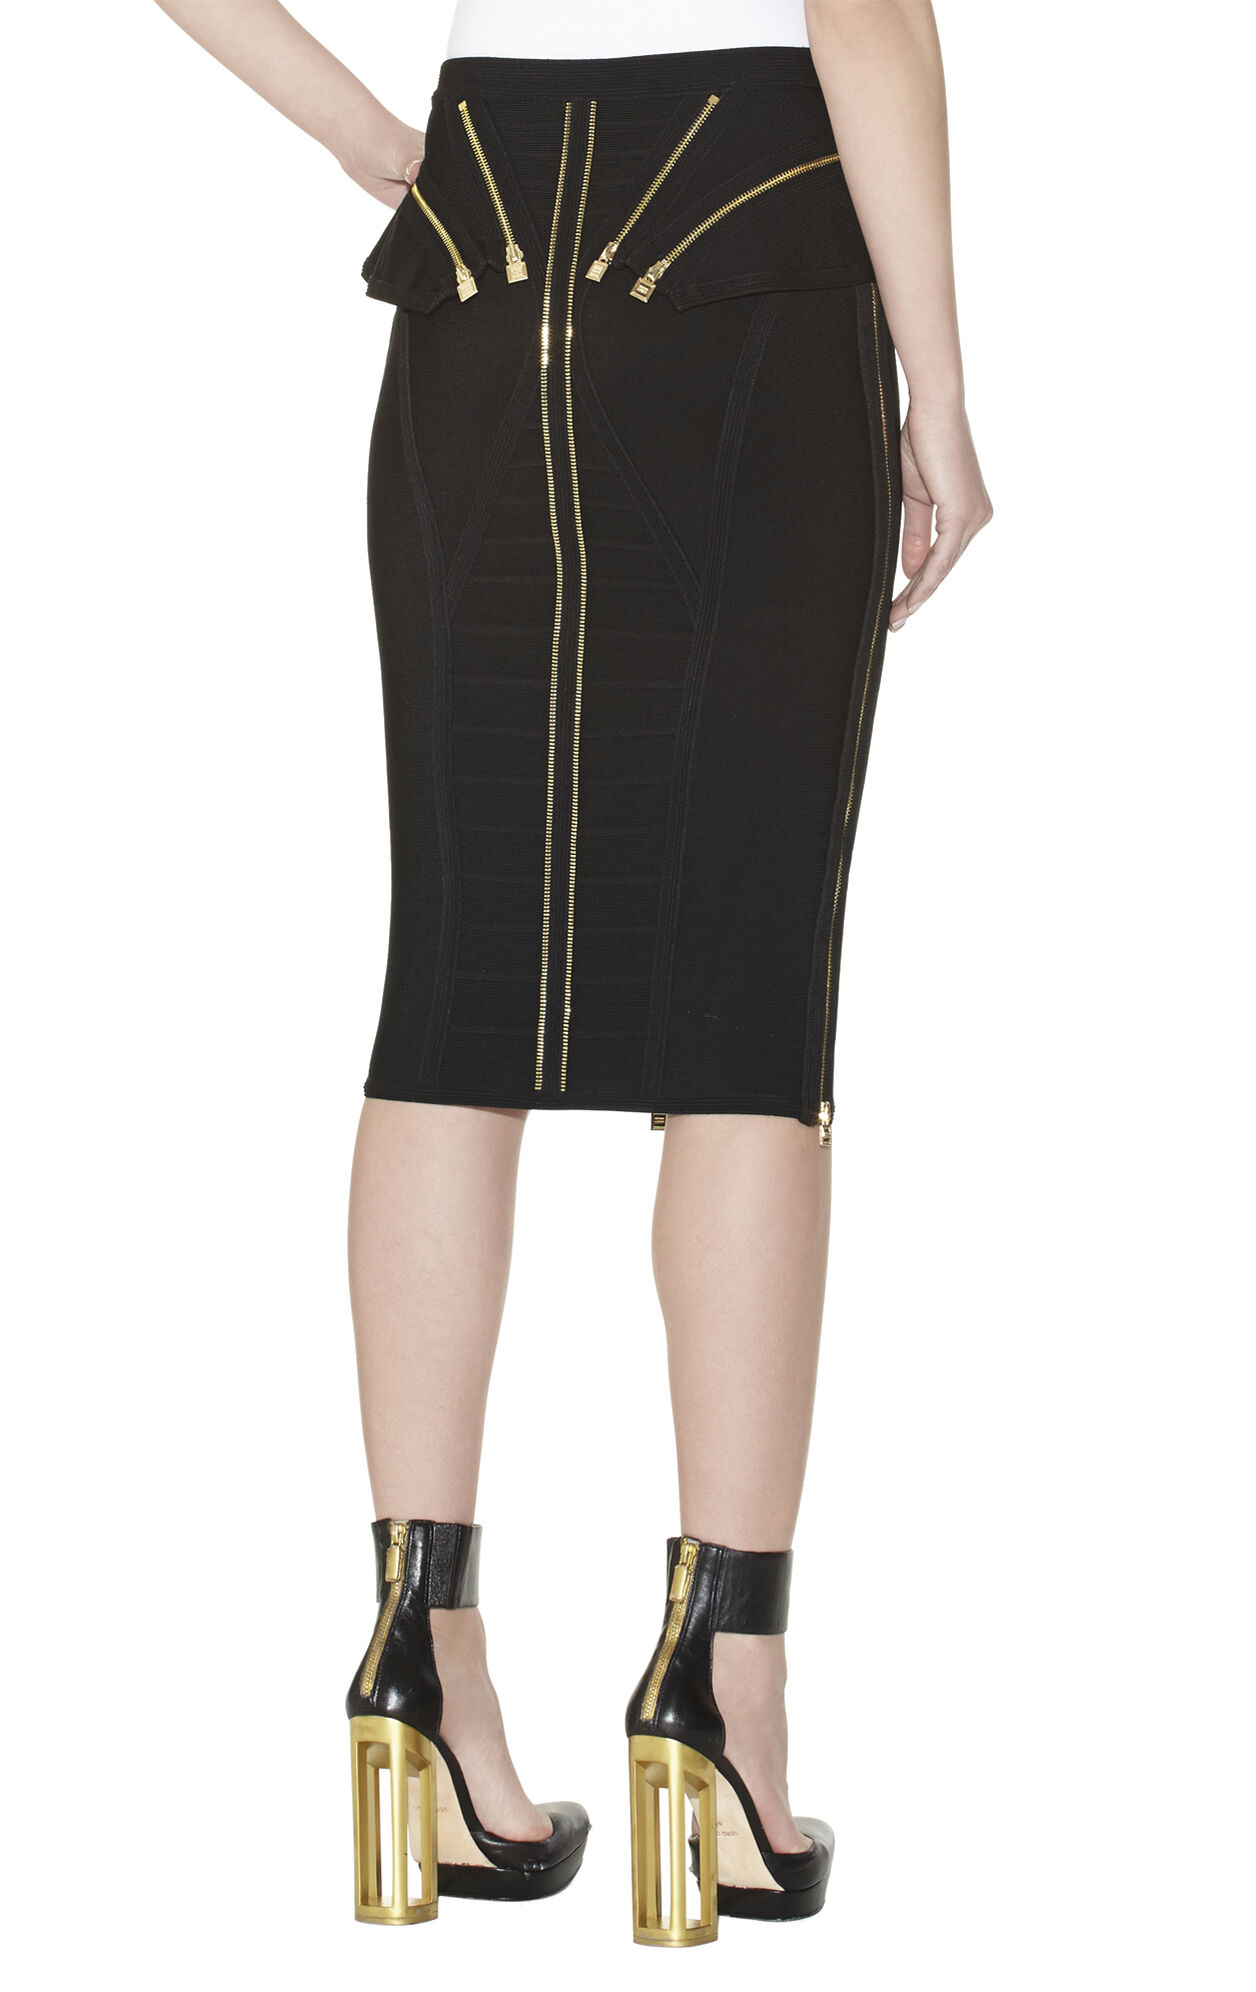 Oxana Zipper-Detailed Skirt